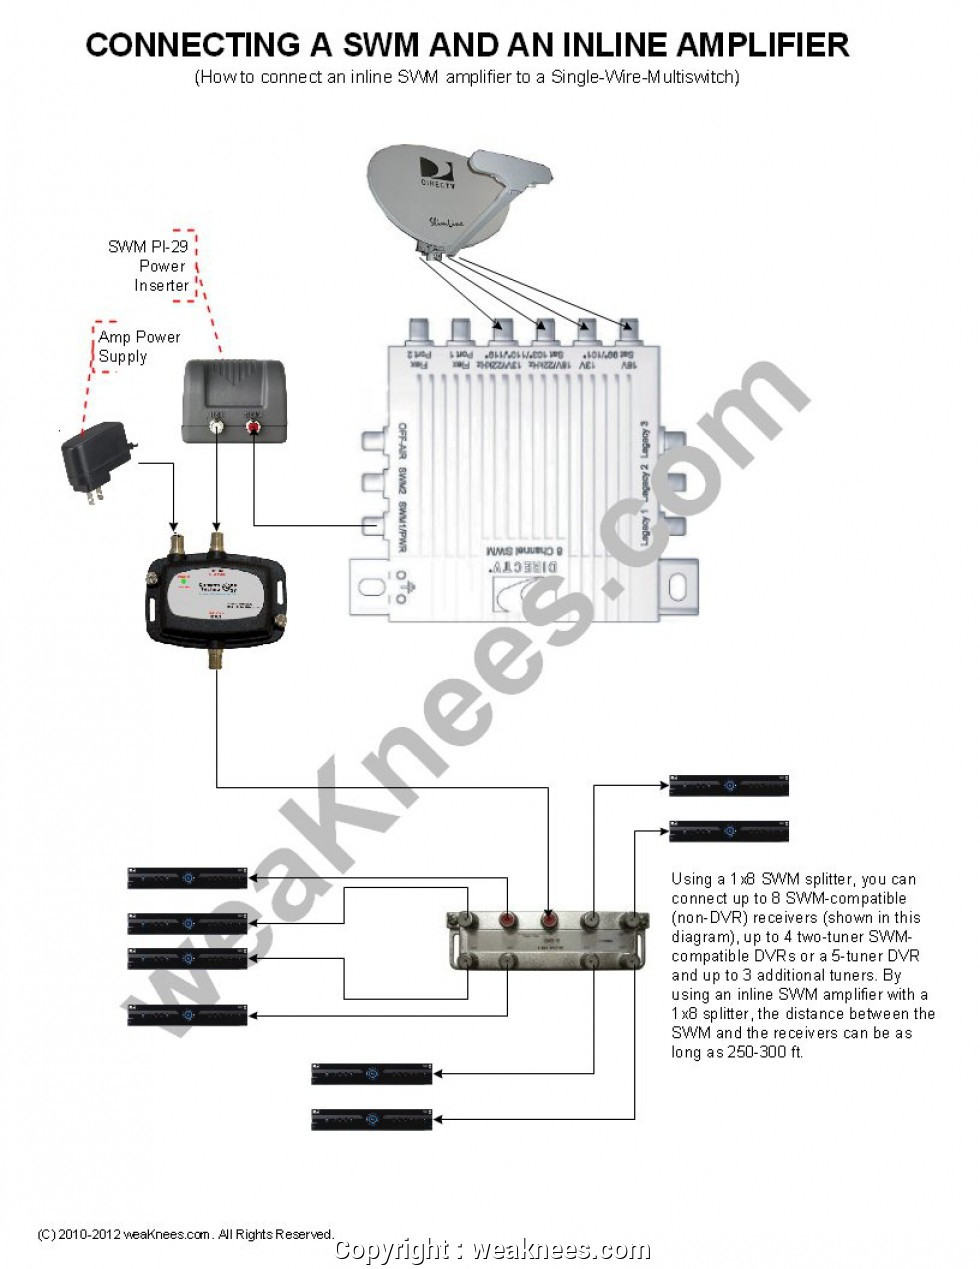 directv swm wiring diagram Download-Useful Direct Tv Wiring Diagram DIRECTV SWM Wiring Diagrams And Resources 9-m